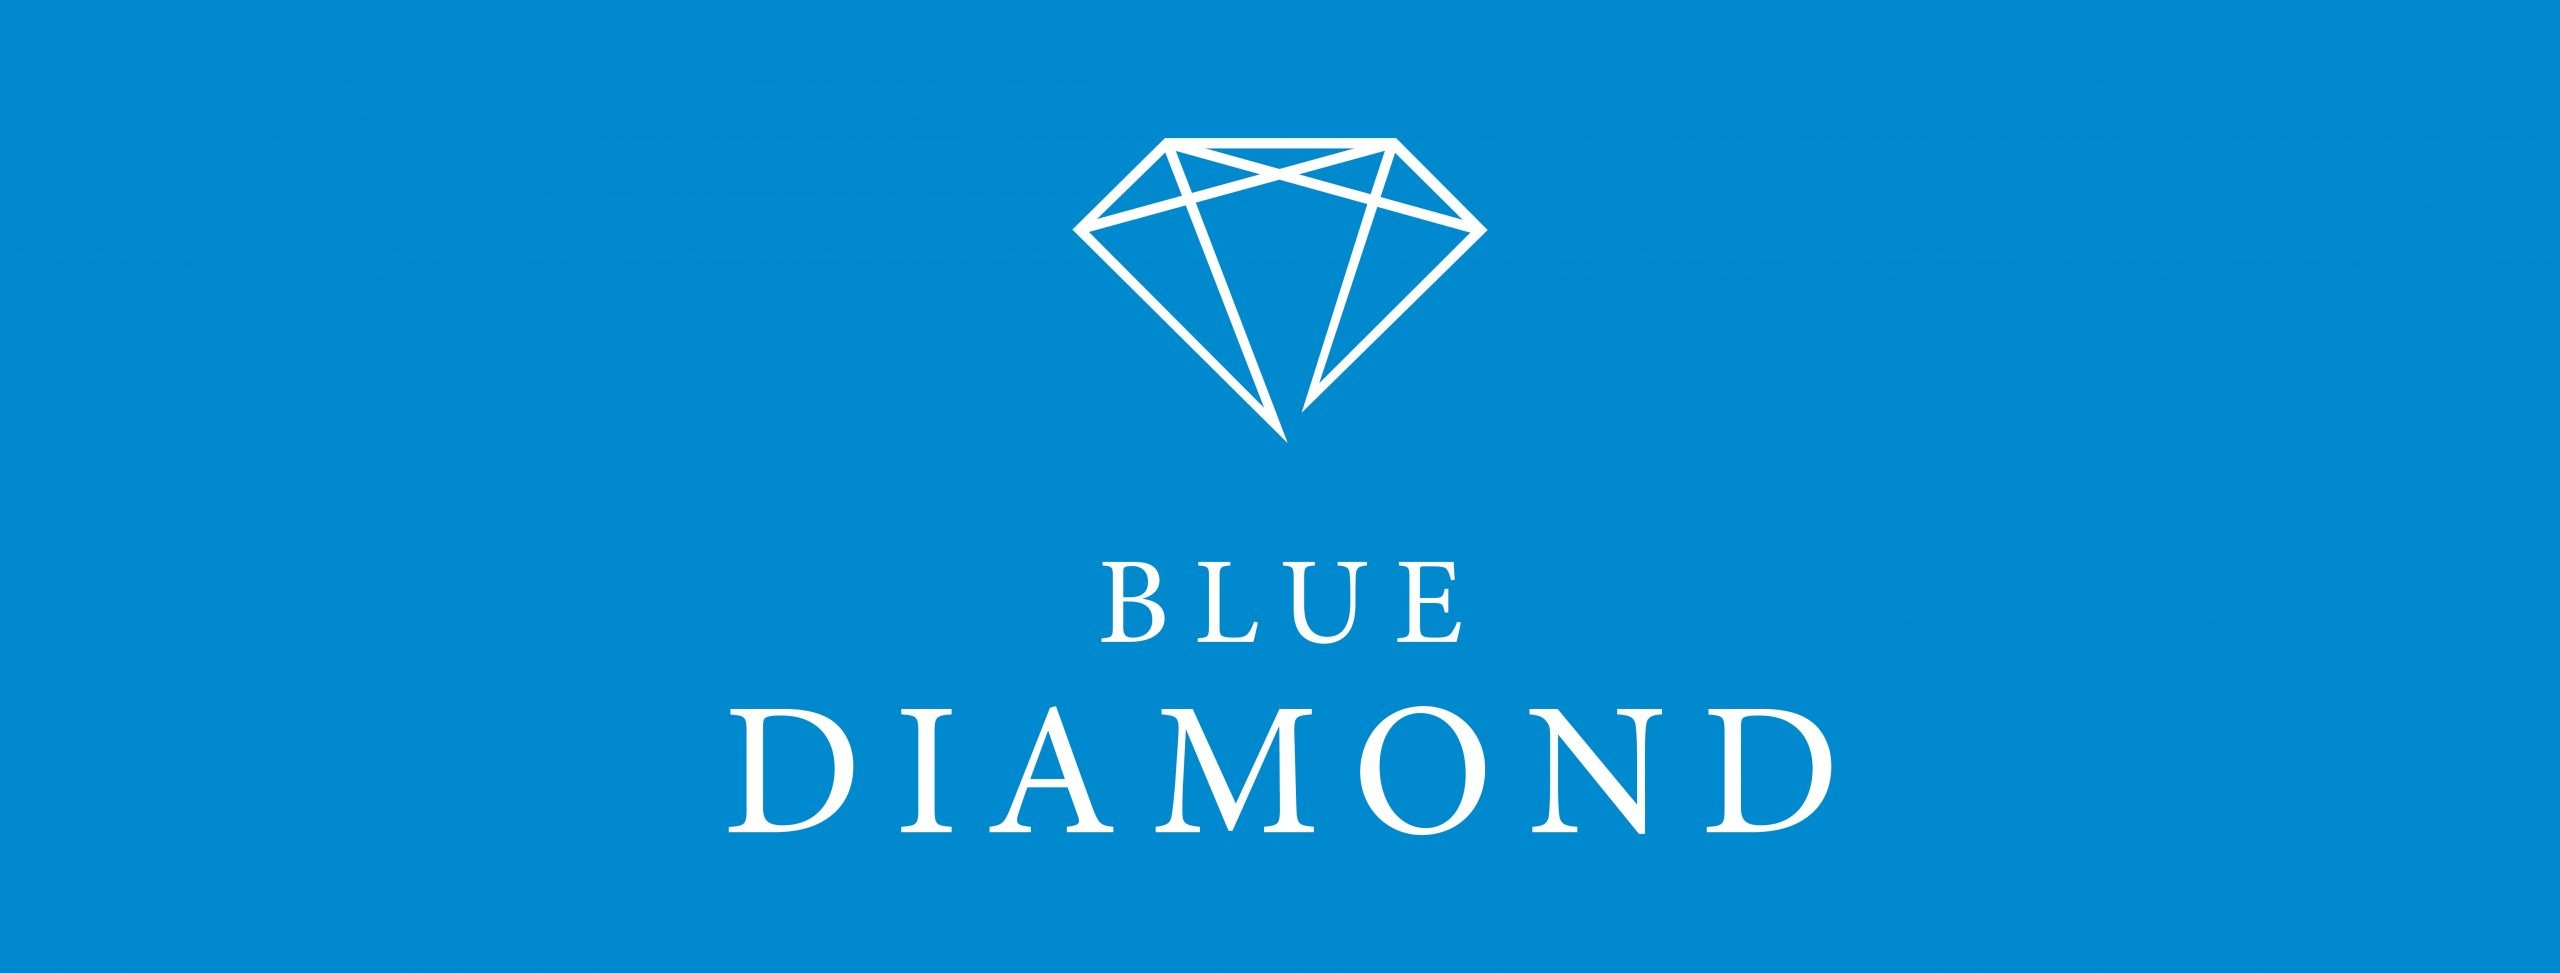 20200611_BLUE DIAMOND LOGO